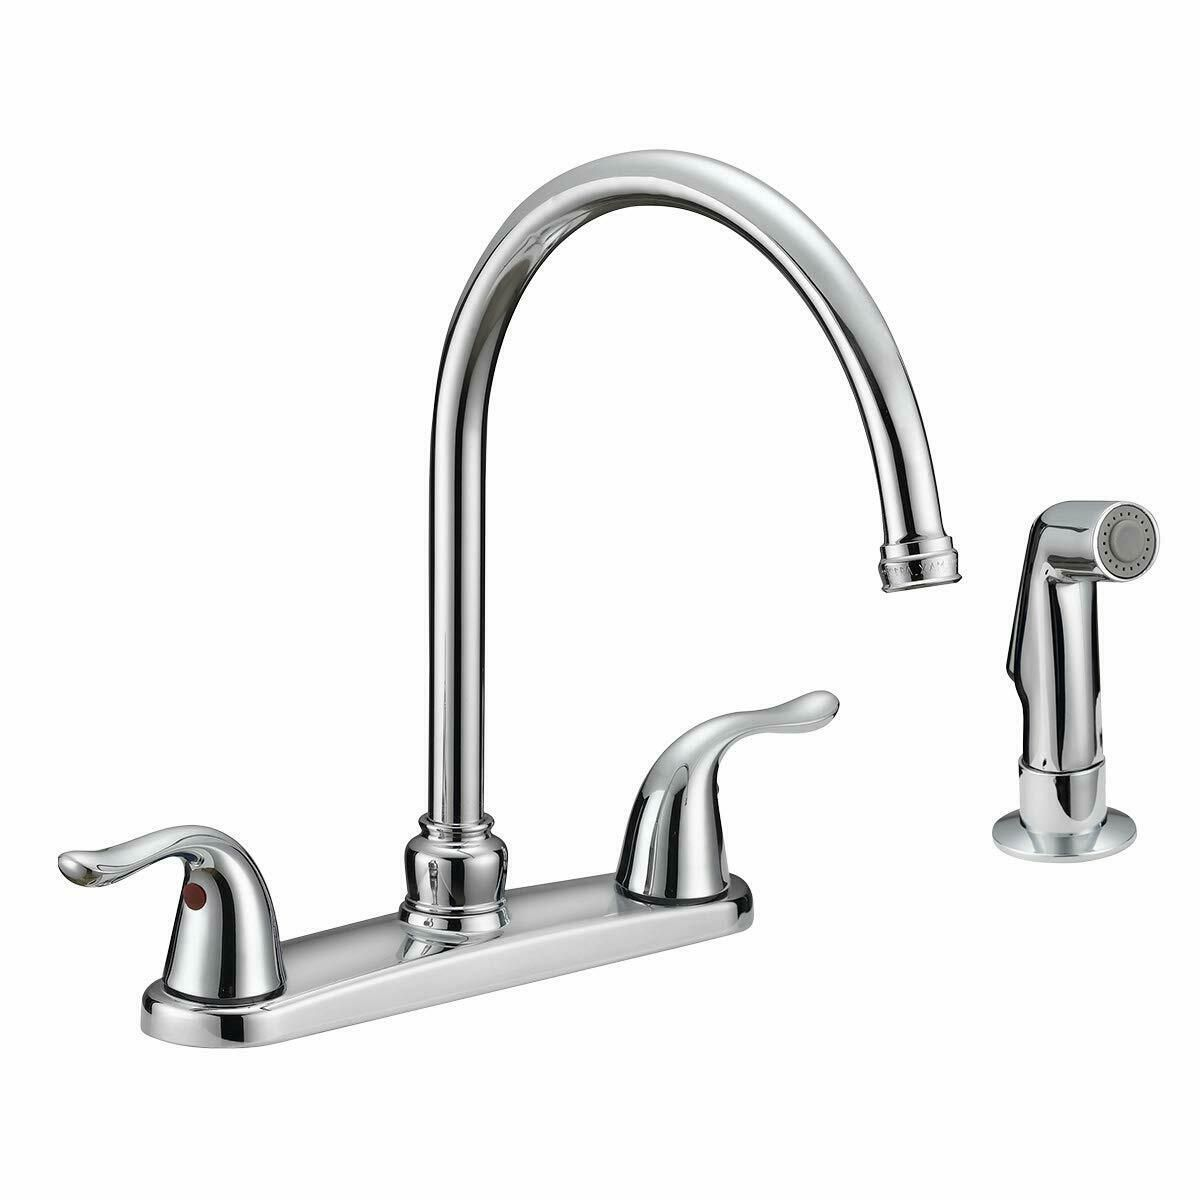 Kitchen Faucet With Side Pull Out Sprayer Two Way Out Mixer Taps